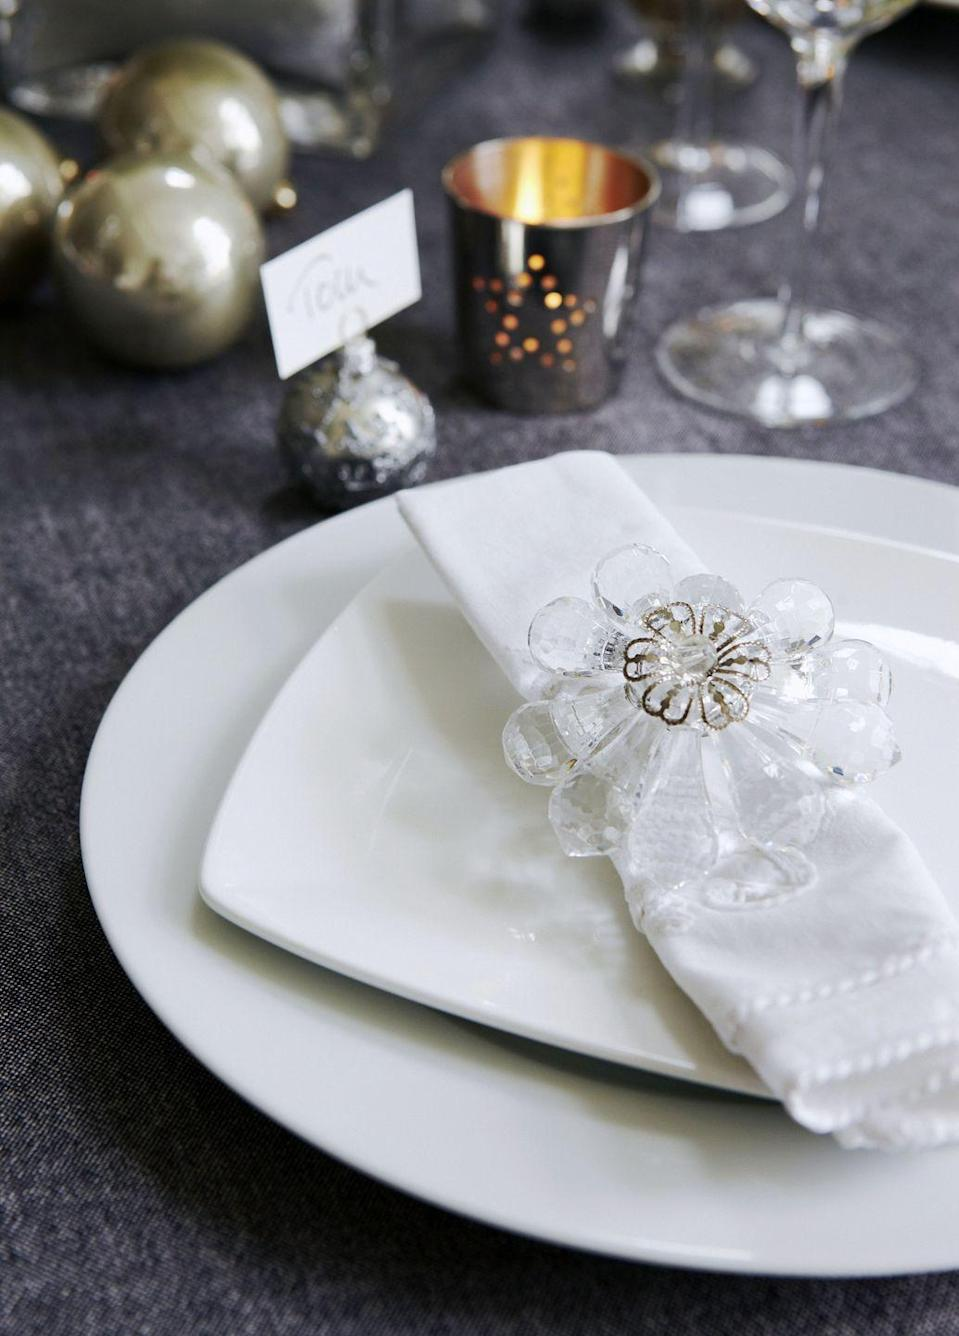 """<p>Bring a dose of nature and elegance to your table with the addition of floral napkin rings. </p><p><a class=""""link rapid-noclick-resp"""" href=""""https://go.redirectingat.com?id=74968X1596630&url=https%3A%2F%2Fwww.bedbathandbeyond.com%2Fstore%2Fproduct%2Fsaro-lifestyle-beaded-floral-bouquet-napkin-rings%2F5286721&sref=https%3A%2F%2Fwww.goodhousekeeping.com%2Fholidays%2Fchristmas-ideas%2Fhow-to%2Fg2196%2Fchristmas-table-settings%2F"""" rel=""""nofollow noopener"""" target=""""_blank"""" data-ylk=""""slk:SHOP FLORAL NAPKIN RINGS"""">SHOP FLORAL NAPKIN RINGS</a></p>"""